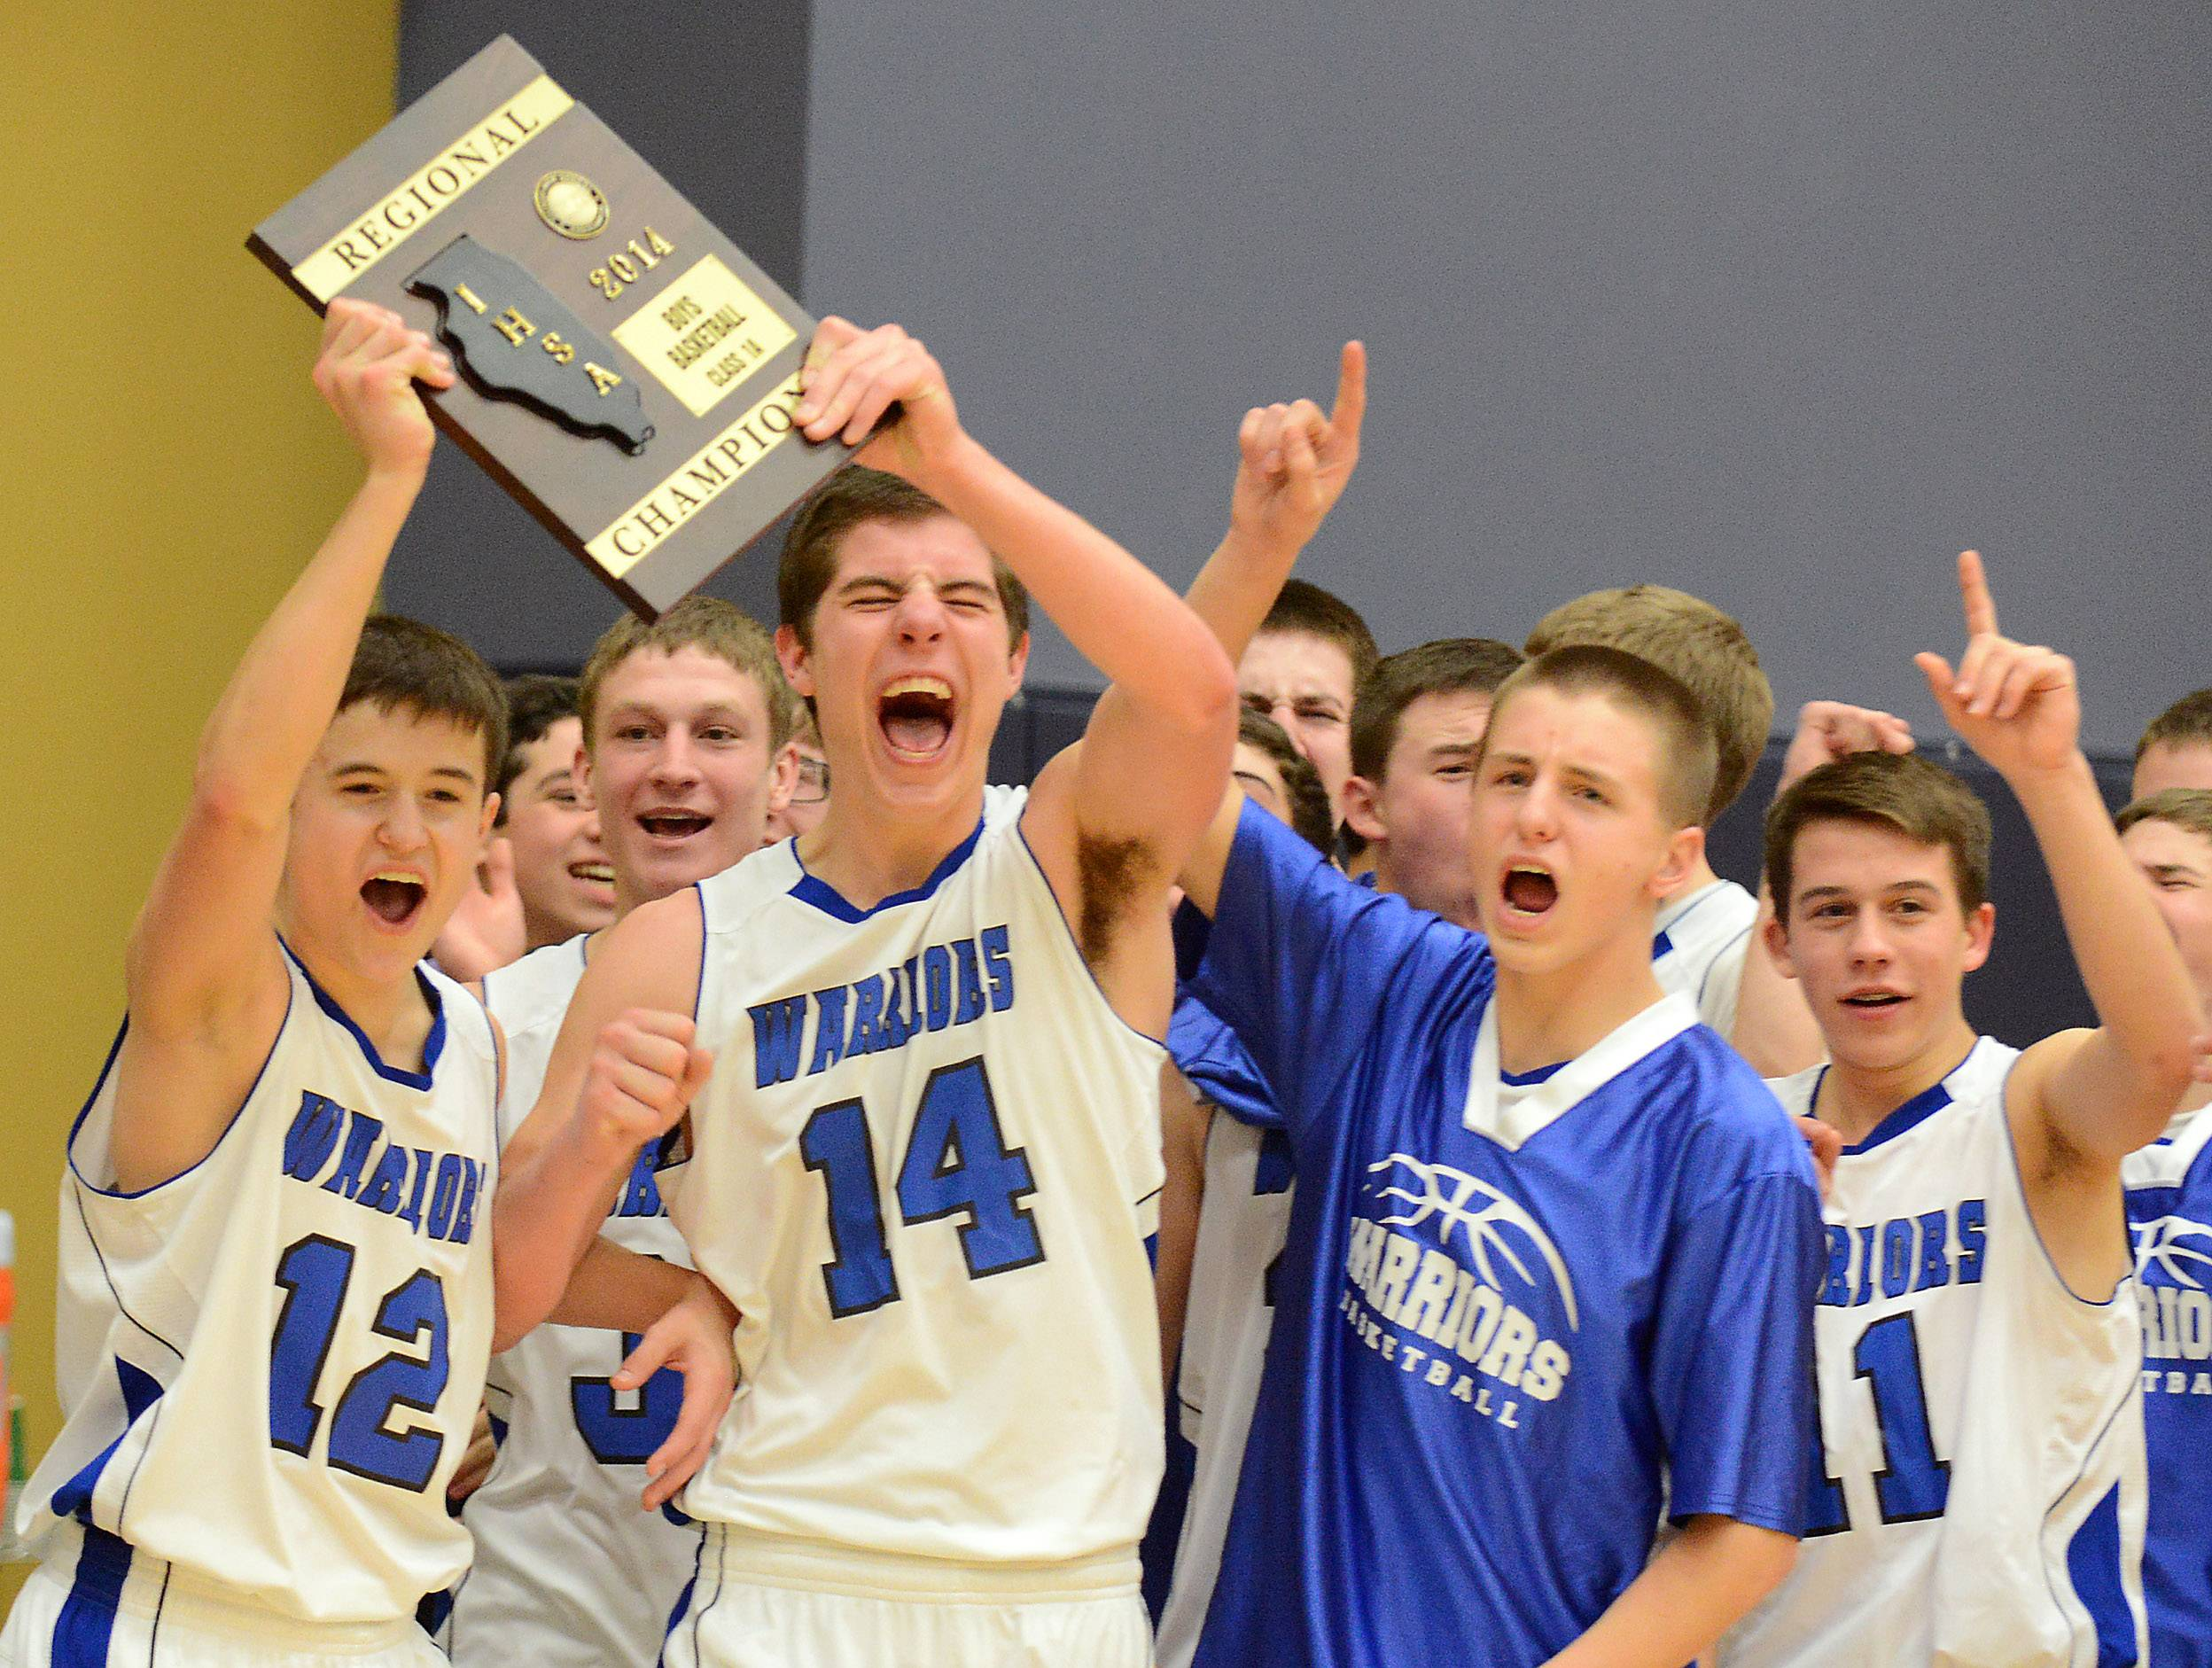 Westminster Christian's Dillion Rejman (12) and Sam Carani (14) hoist the championship plaque following their win over Harvest Christian during Friday's regional championship game at Harvest Christian Academy in Elgin.